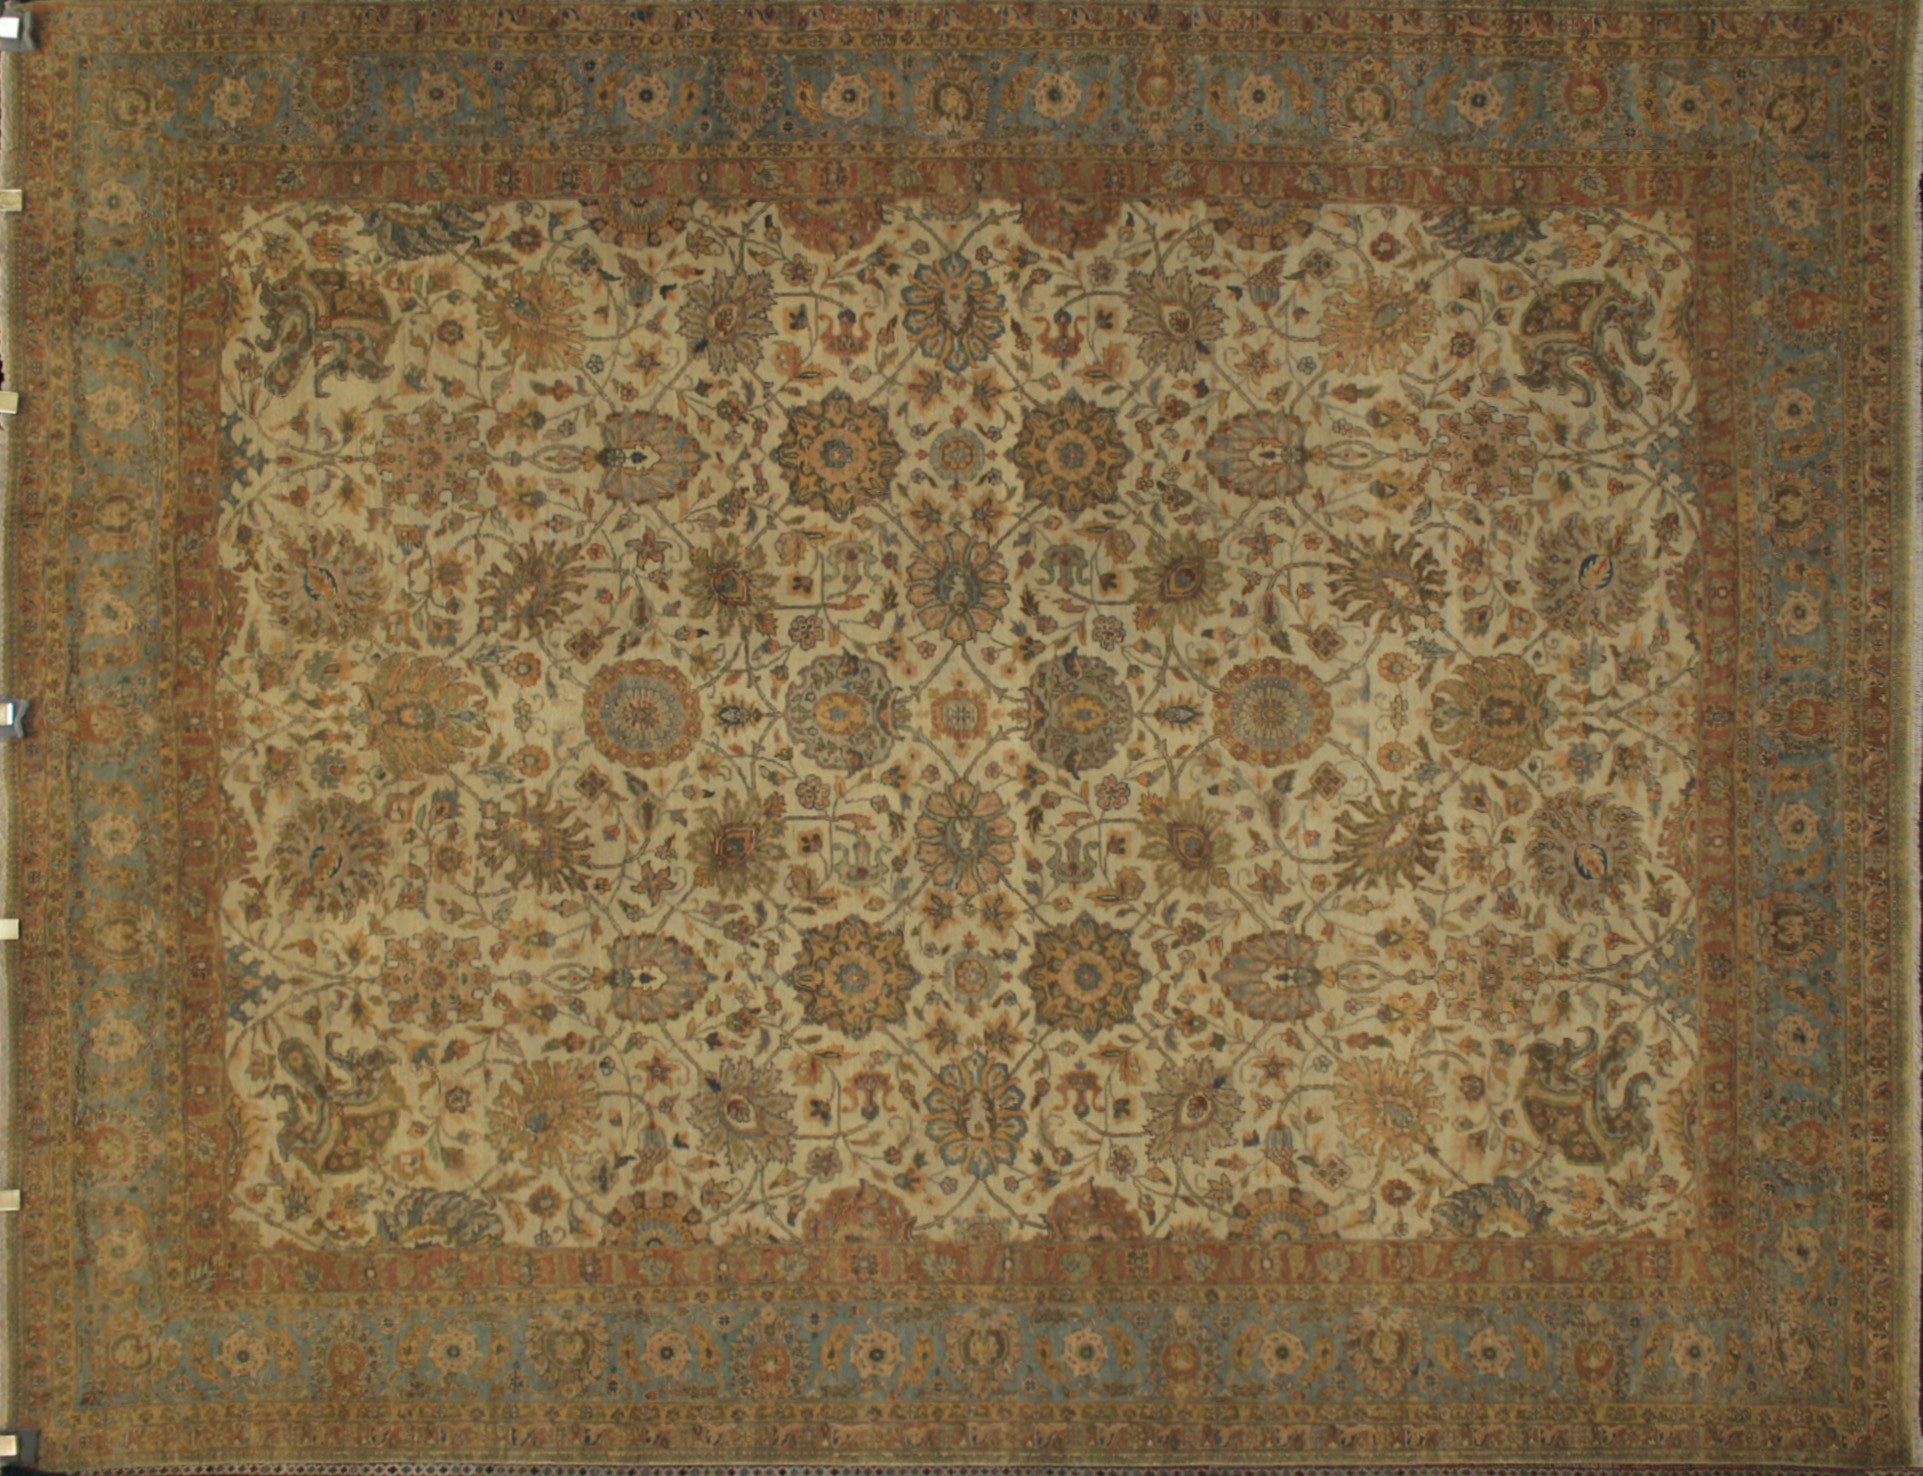 8x10 Antique Revival Hand Knotted Wool Area Rug - MR11665